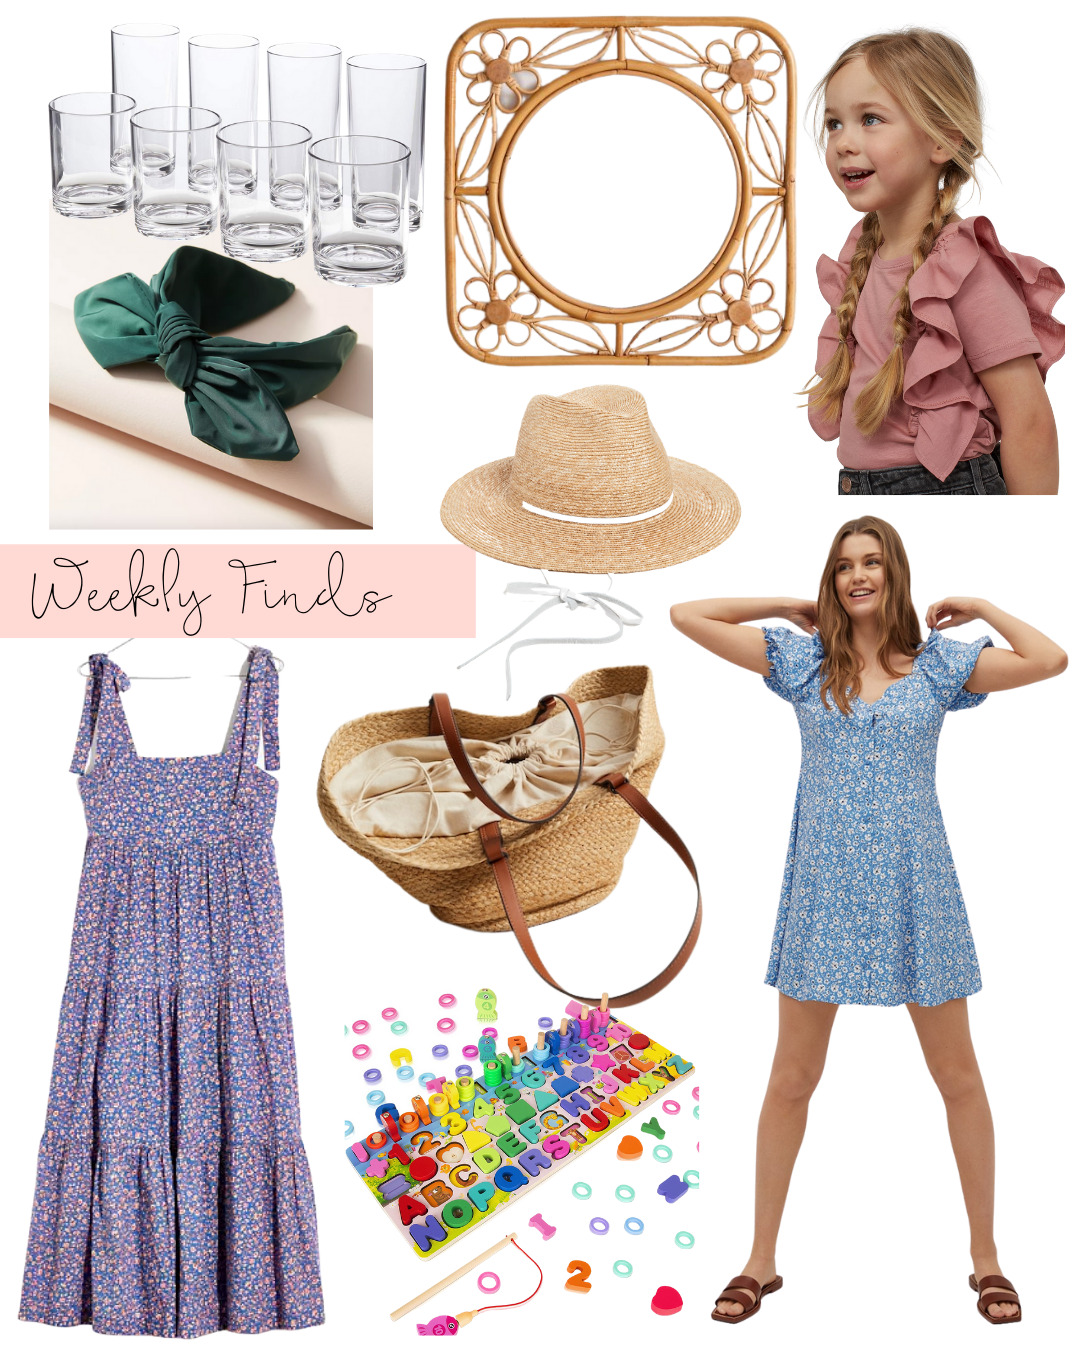 Click through for the weekly finds (including a few chic spring upgrades) that I'm loving this week …